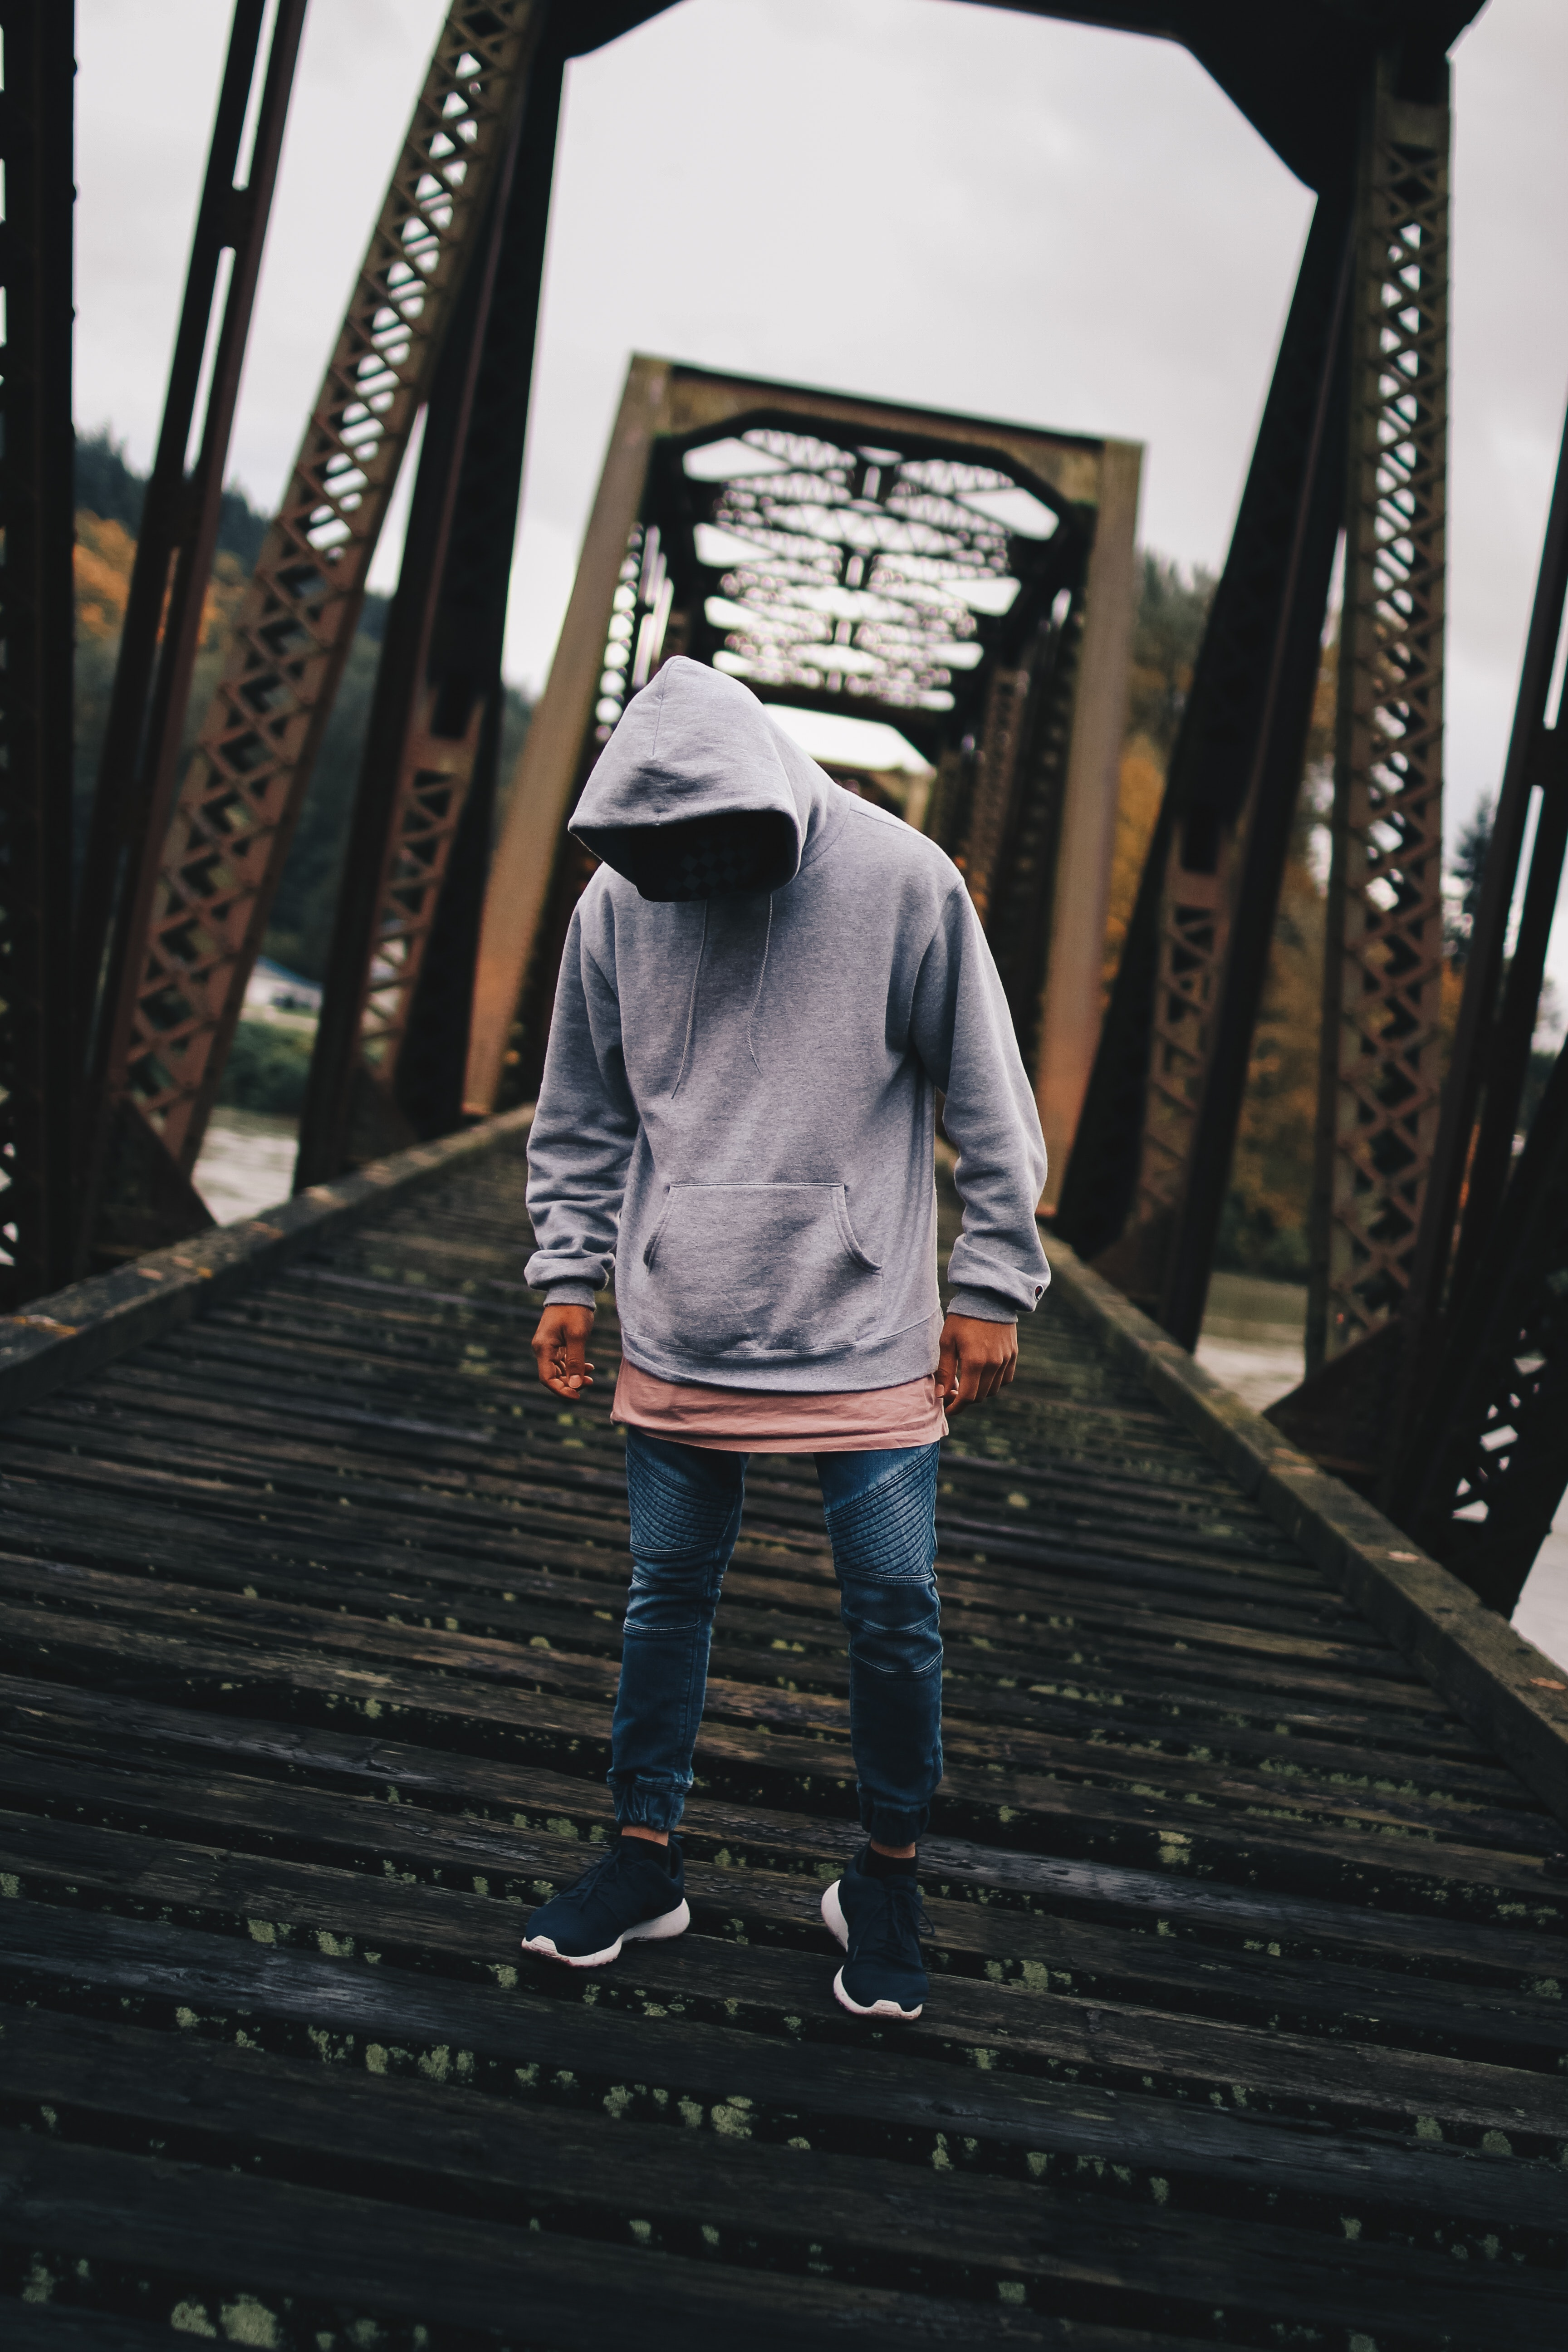 Man in Gray Pull-over Hoodie Standing on Train Rail, Adult, Photoshoot, Water, Travel, HQ Photo